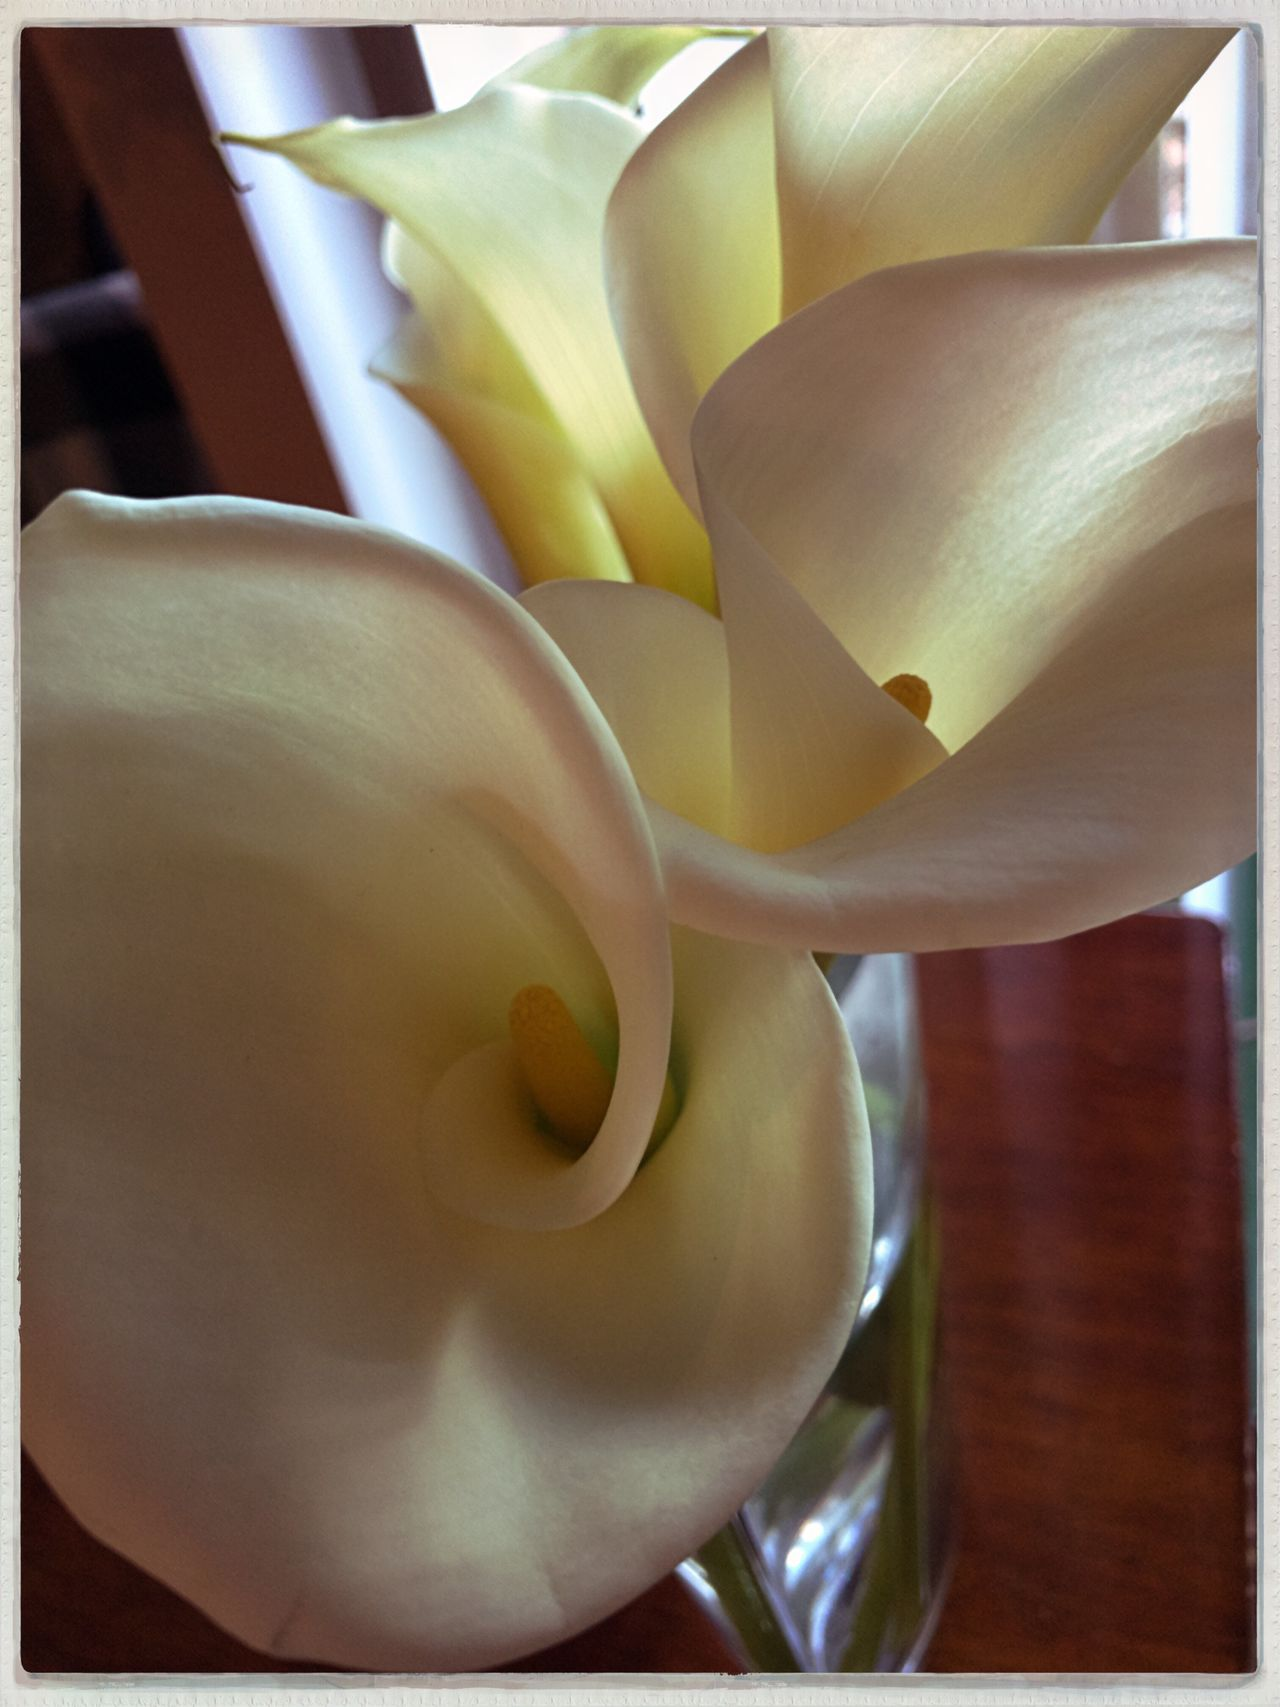 Flower Freshness Fragility Close-up Nature Petal Beauty In Nature No People Flower Head Growth Indoors  Day Calla Lily